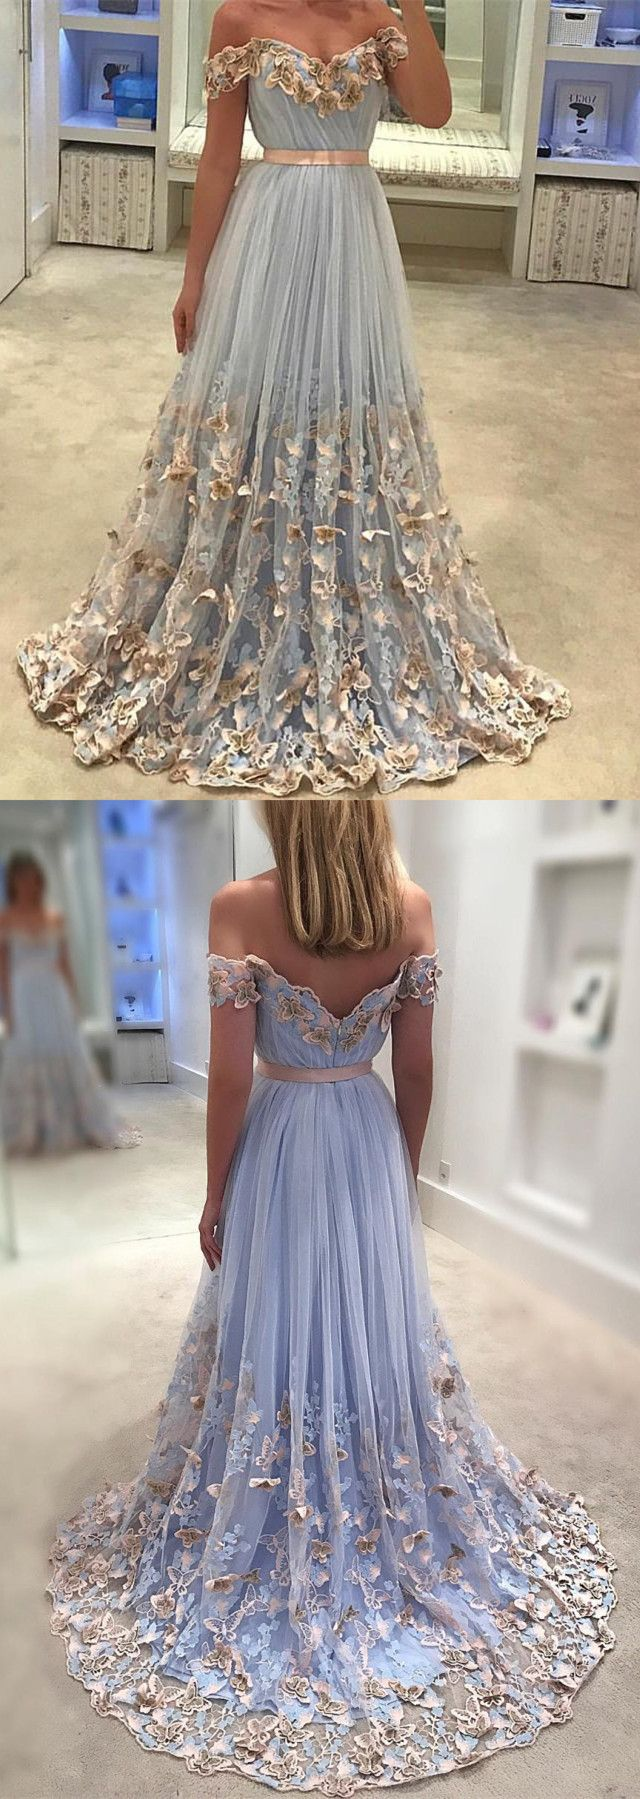 Evening dresses 2018 pinterest everything